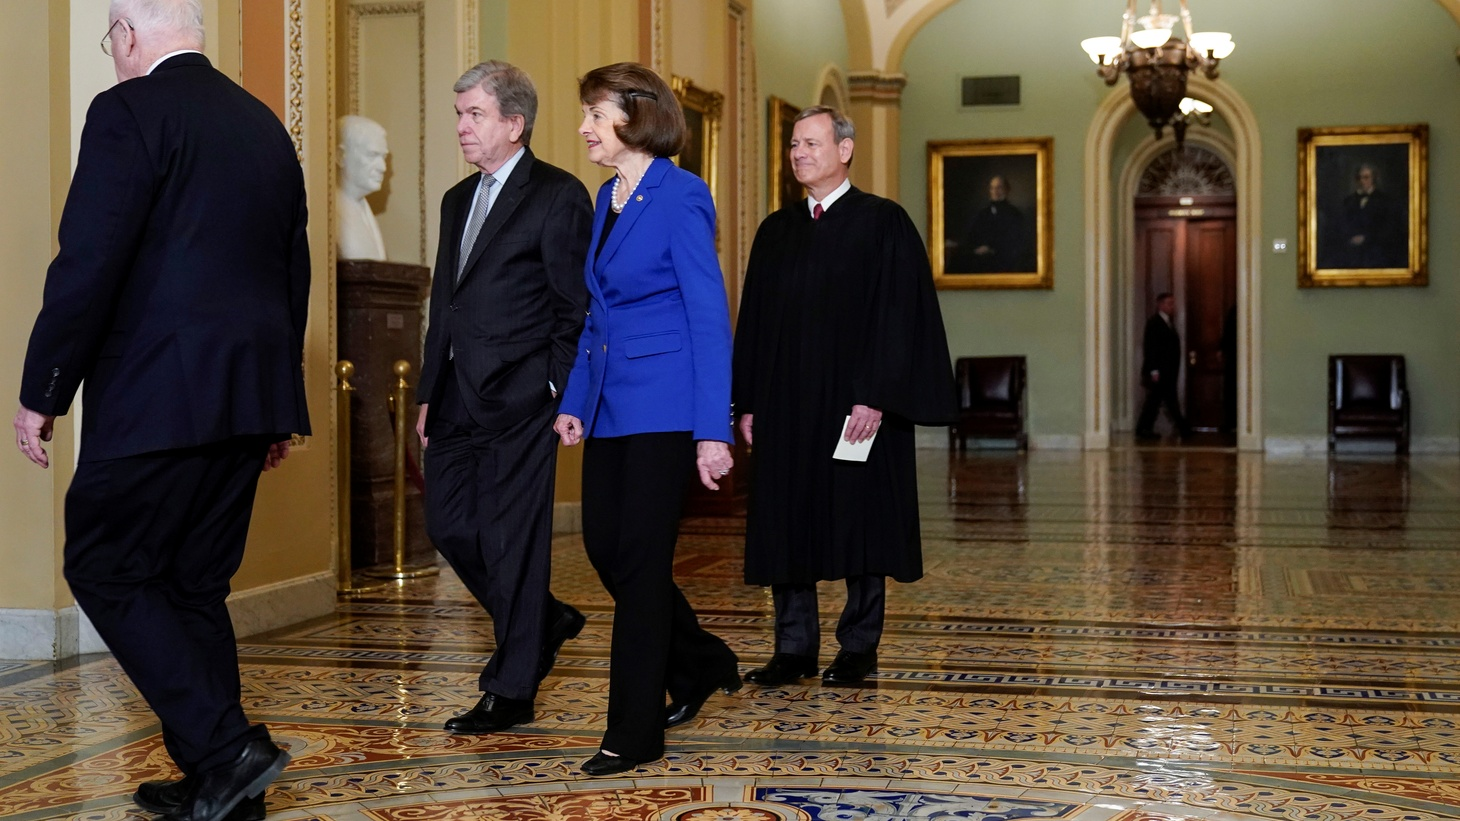 Chief Justice of the United States John Roberts follows Senators Patrick Leahy (D-VT), Roy Blunt (R-MO) and Barbara Feinstein (D-CA) as he arrives for the beginning of the impeachment trial of U.S. President Donald Trump on Capitol Hill in Washington, U.S., January 16, 2020.